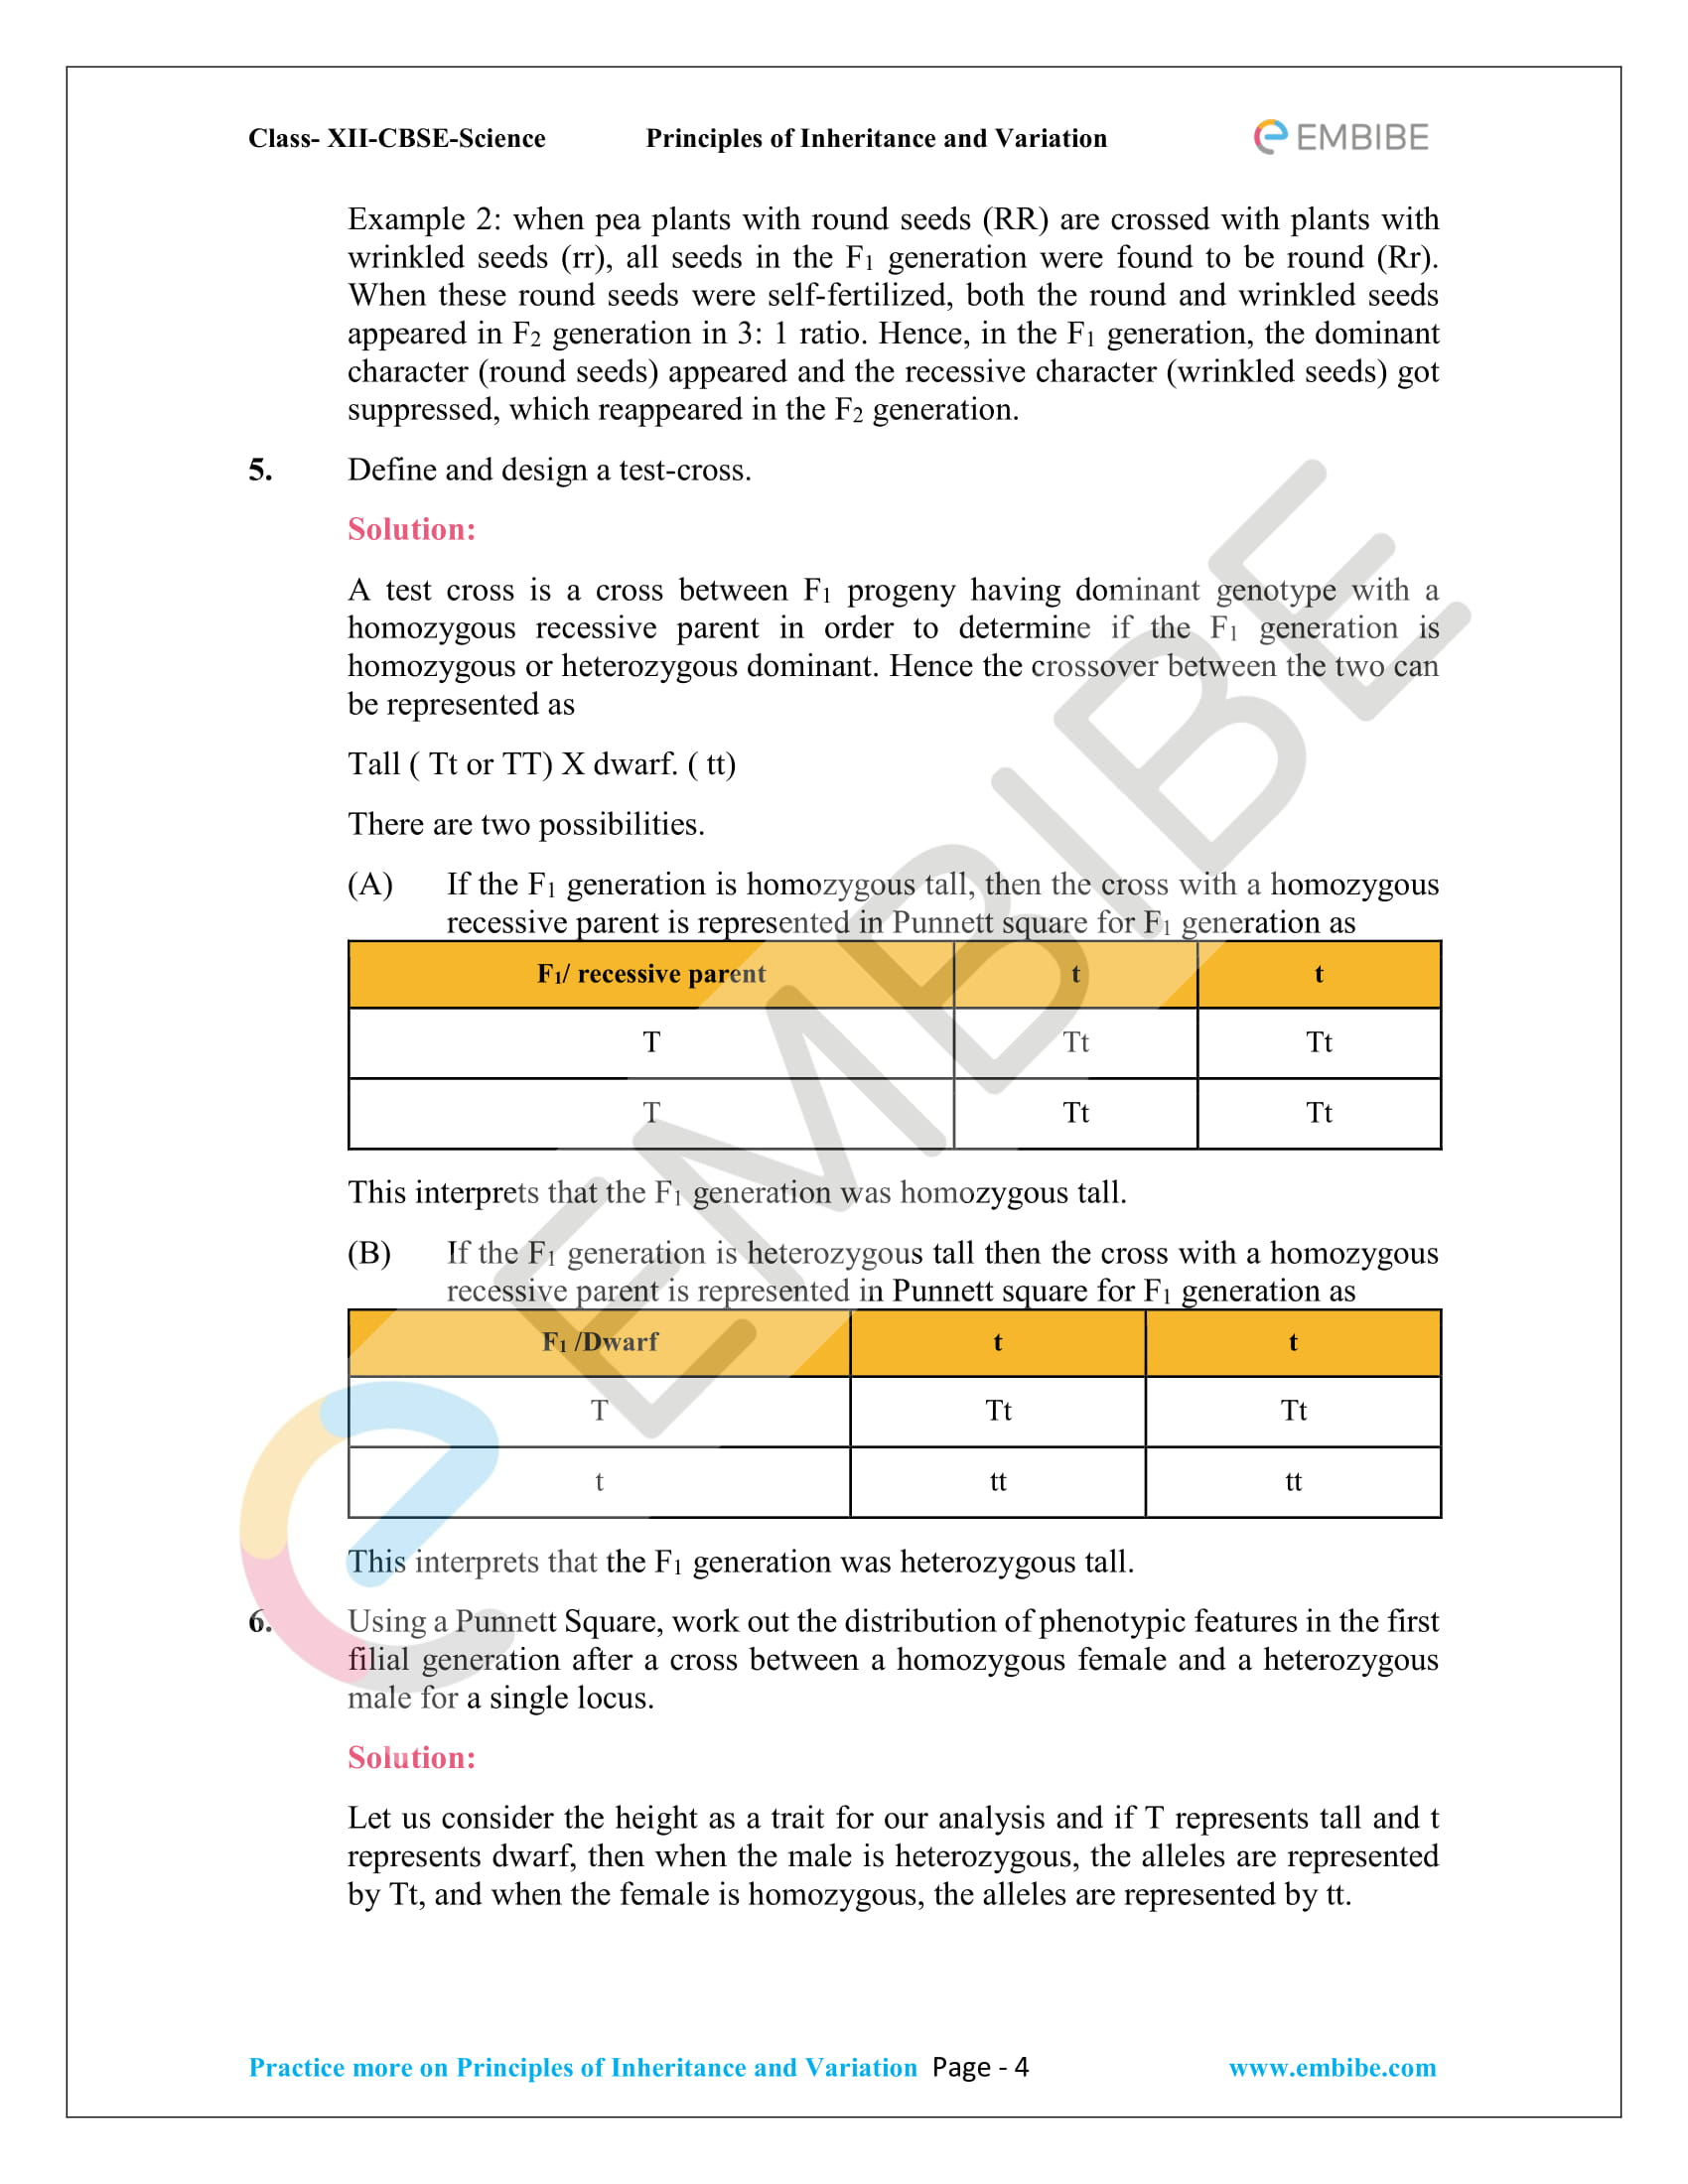 NCERT Solutions for Class 12 Biology Chapter 5: Principles Of Inheritance And Variation - 4